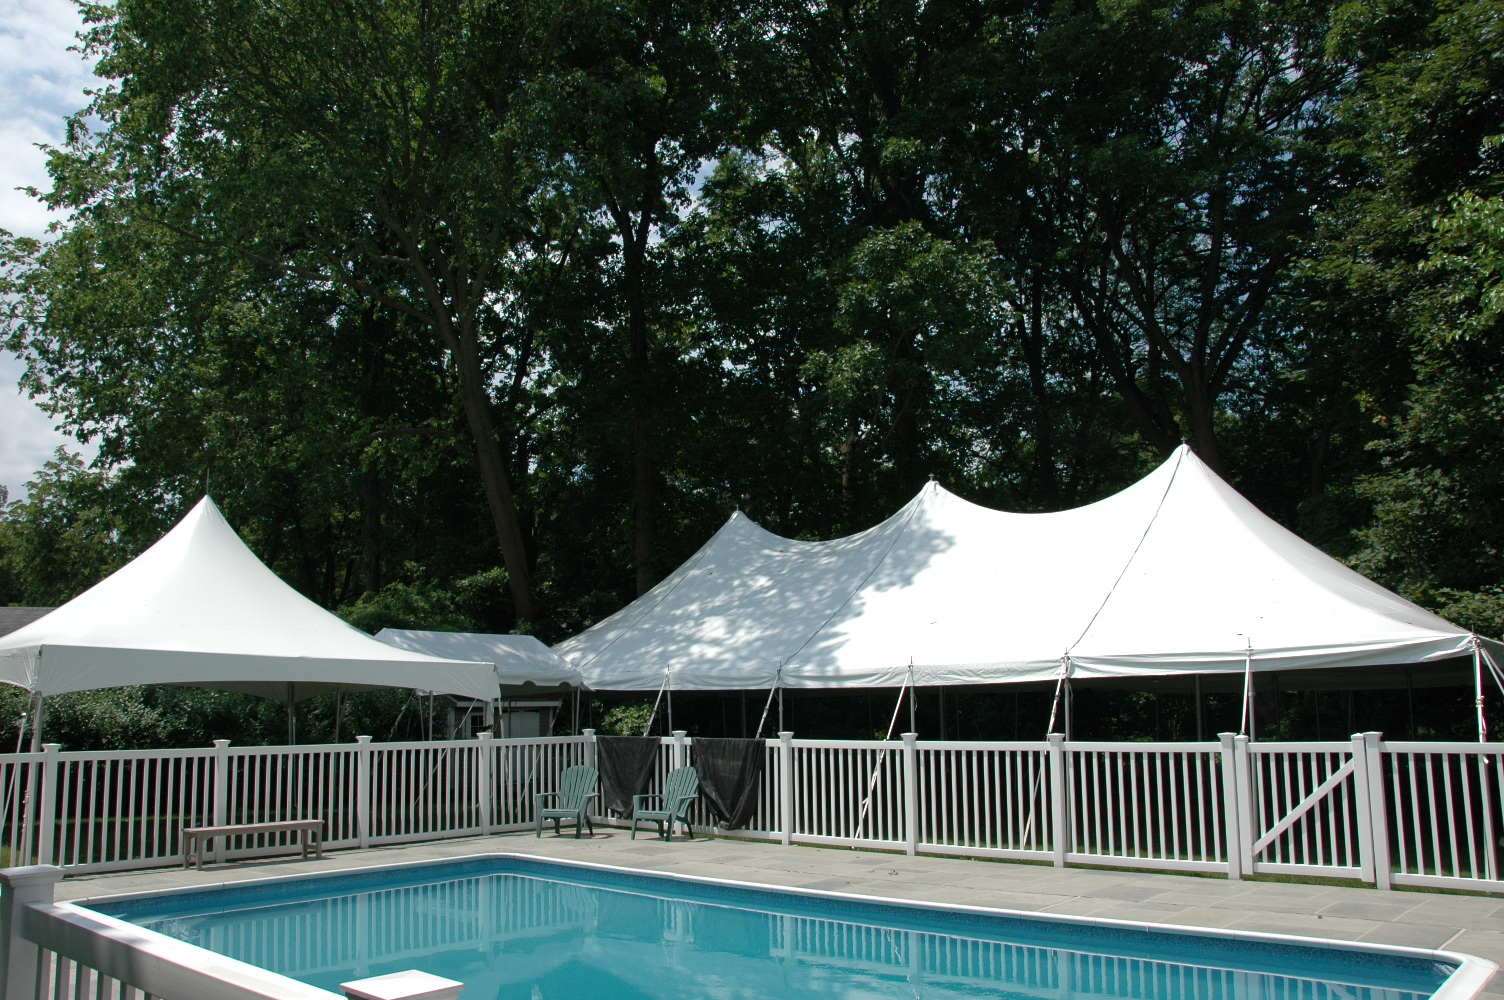 FileTents set up for party in the backyard around the pool.JPG & File:Tents set up for party in the backyard around the pool.JPG ...